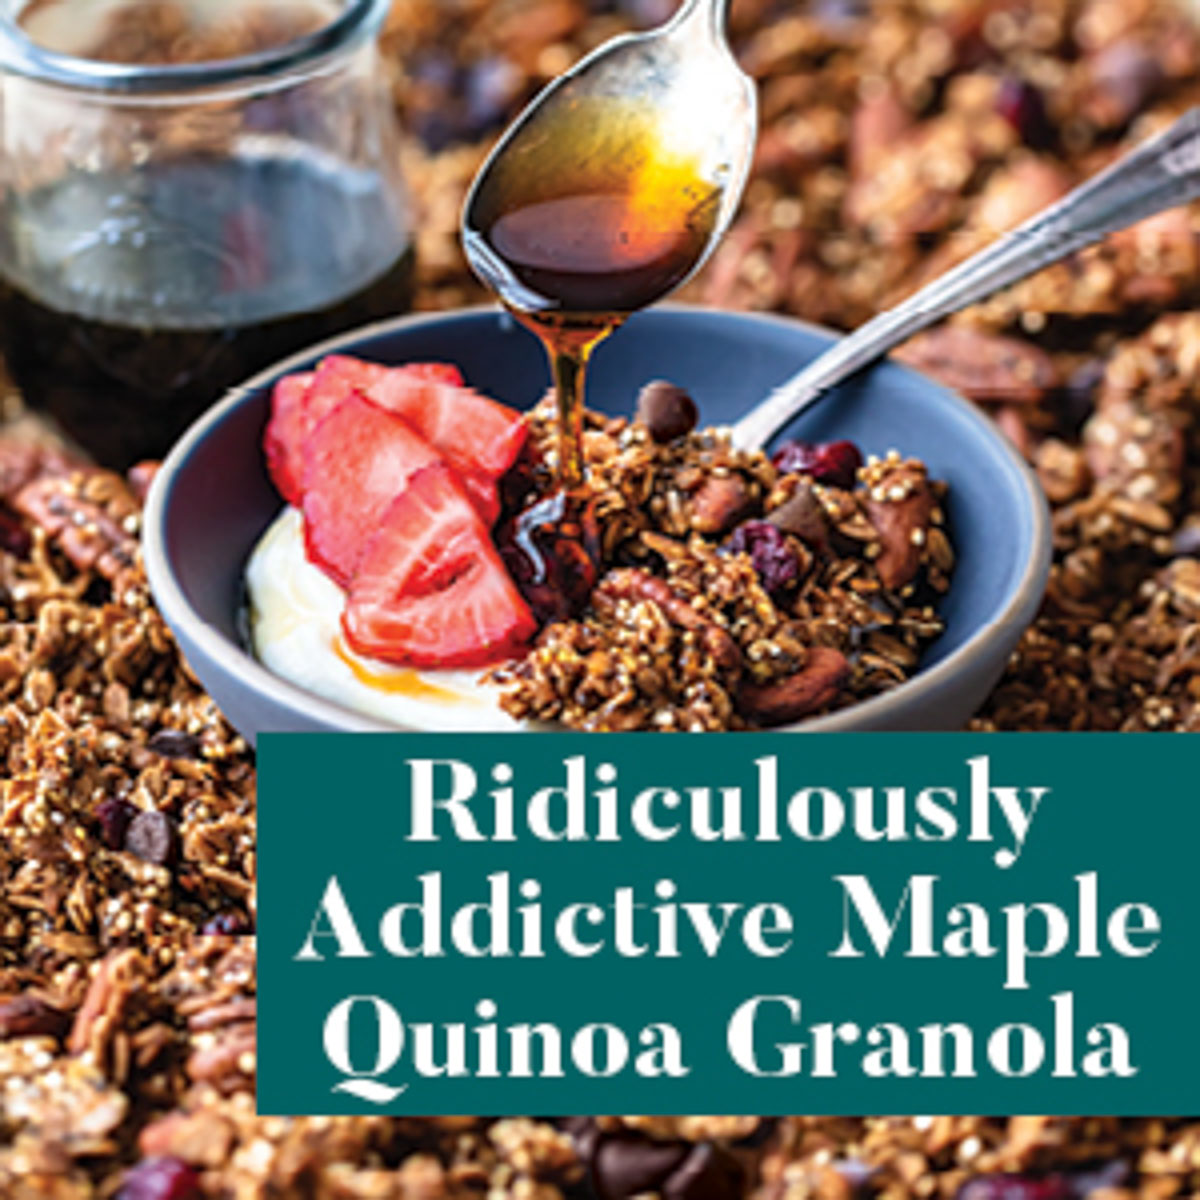 Ridiculously Addictive Maple Quinoa Granola from The Well Plated Cookbook